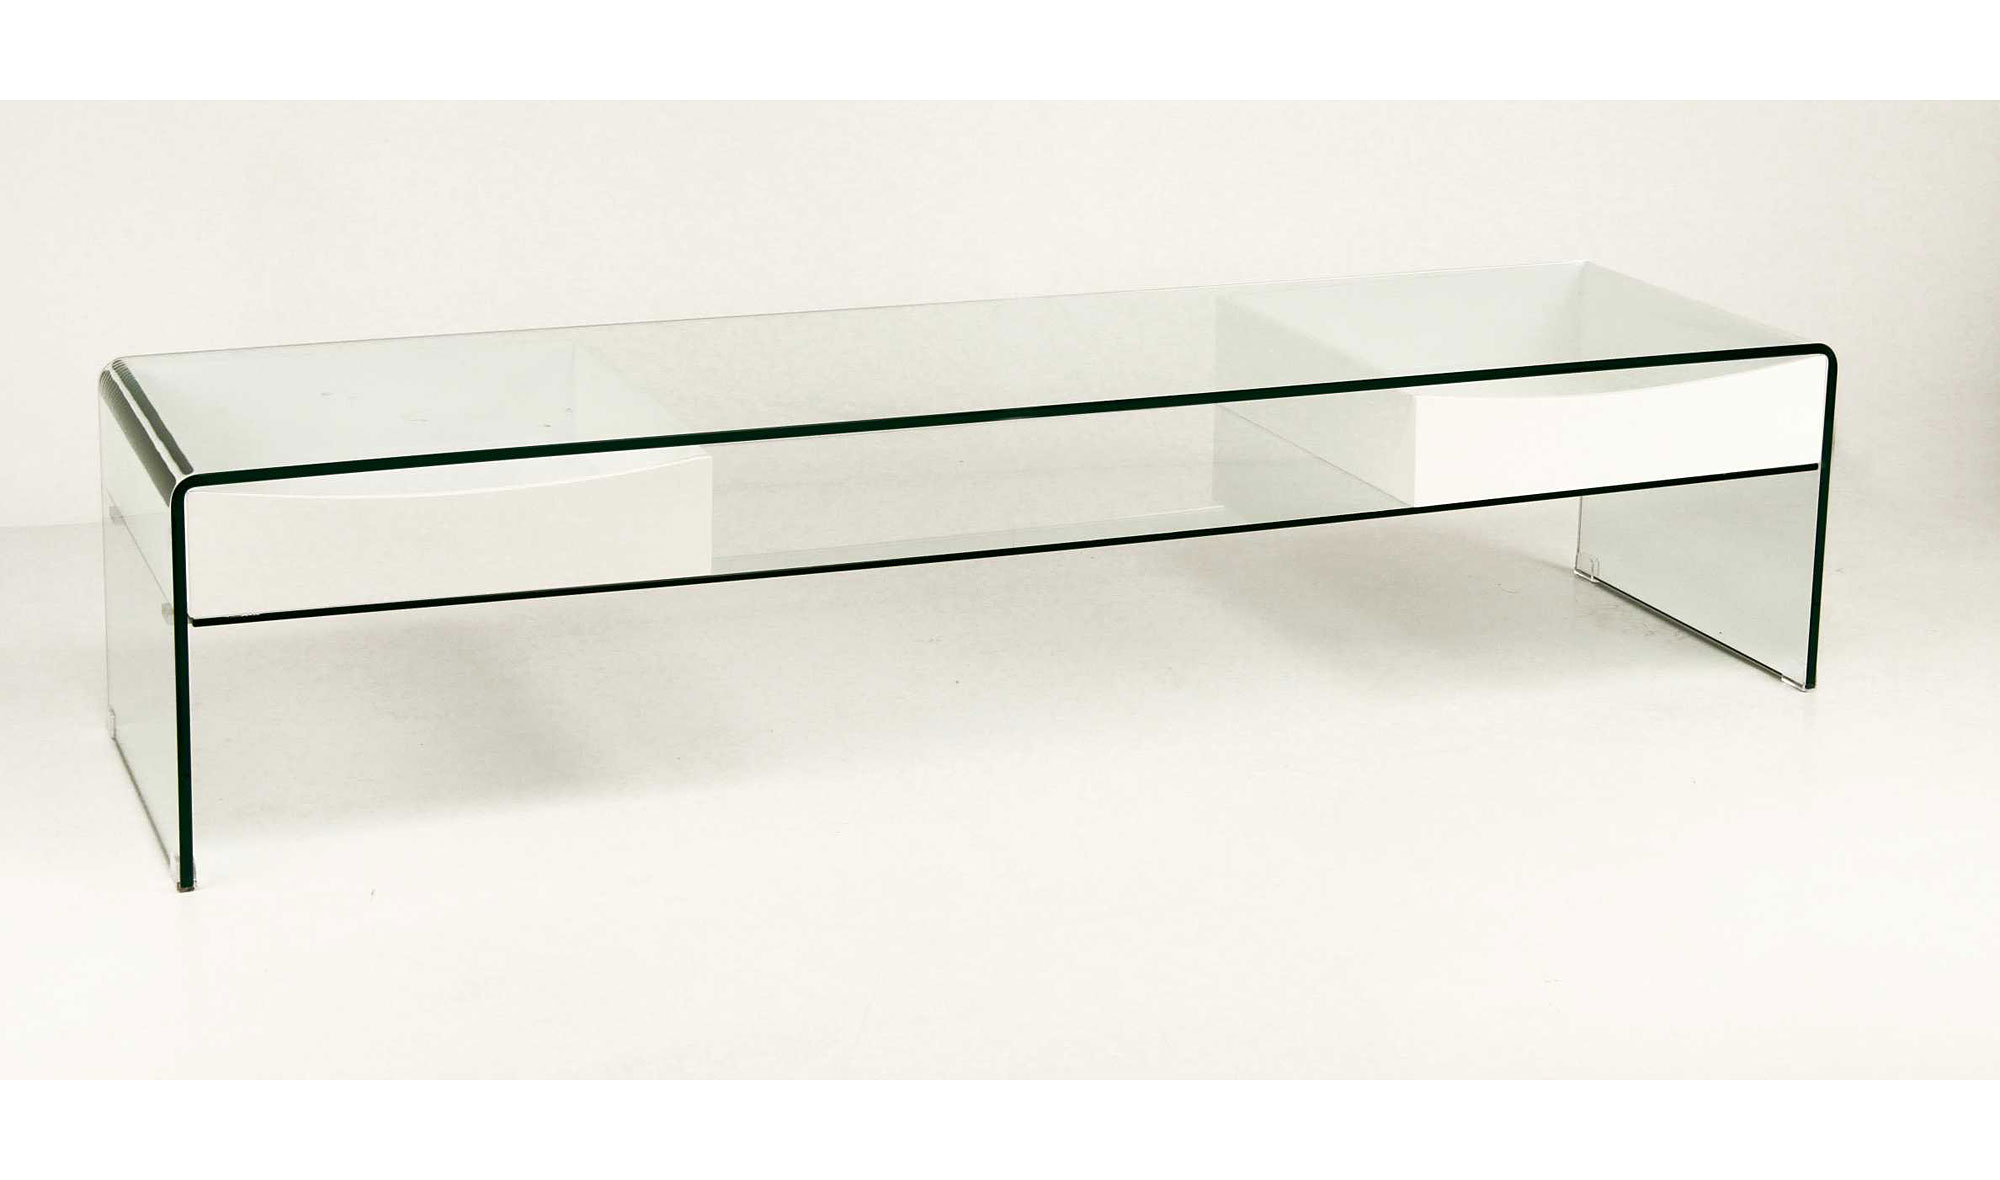 Mueble tv cristal massi no disponible en - Muebles tv cristal ...